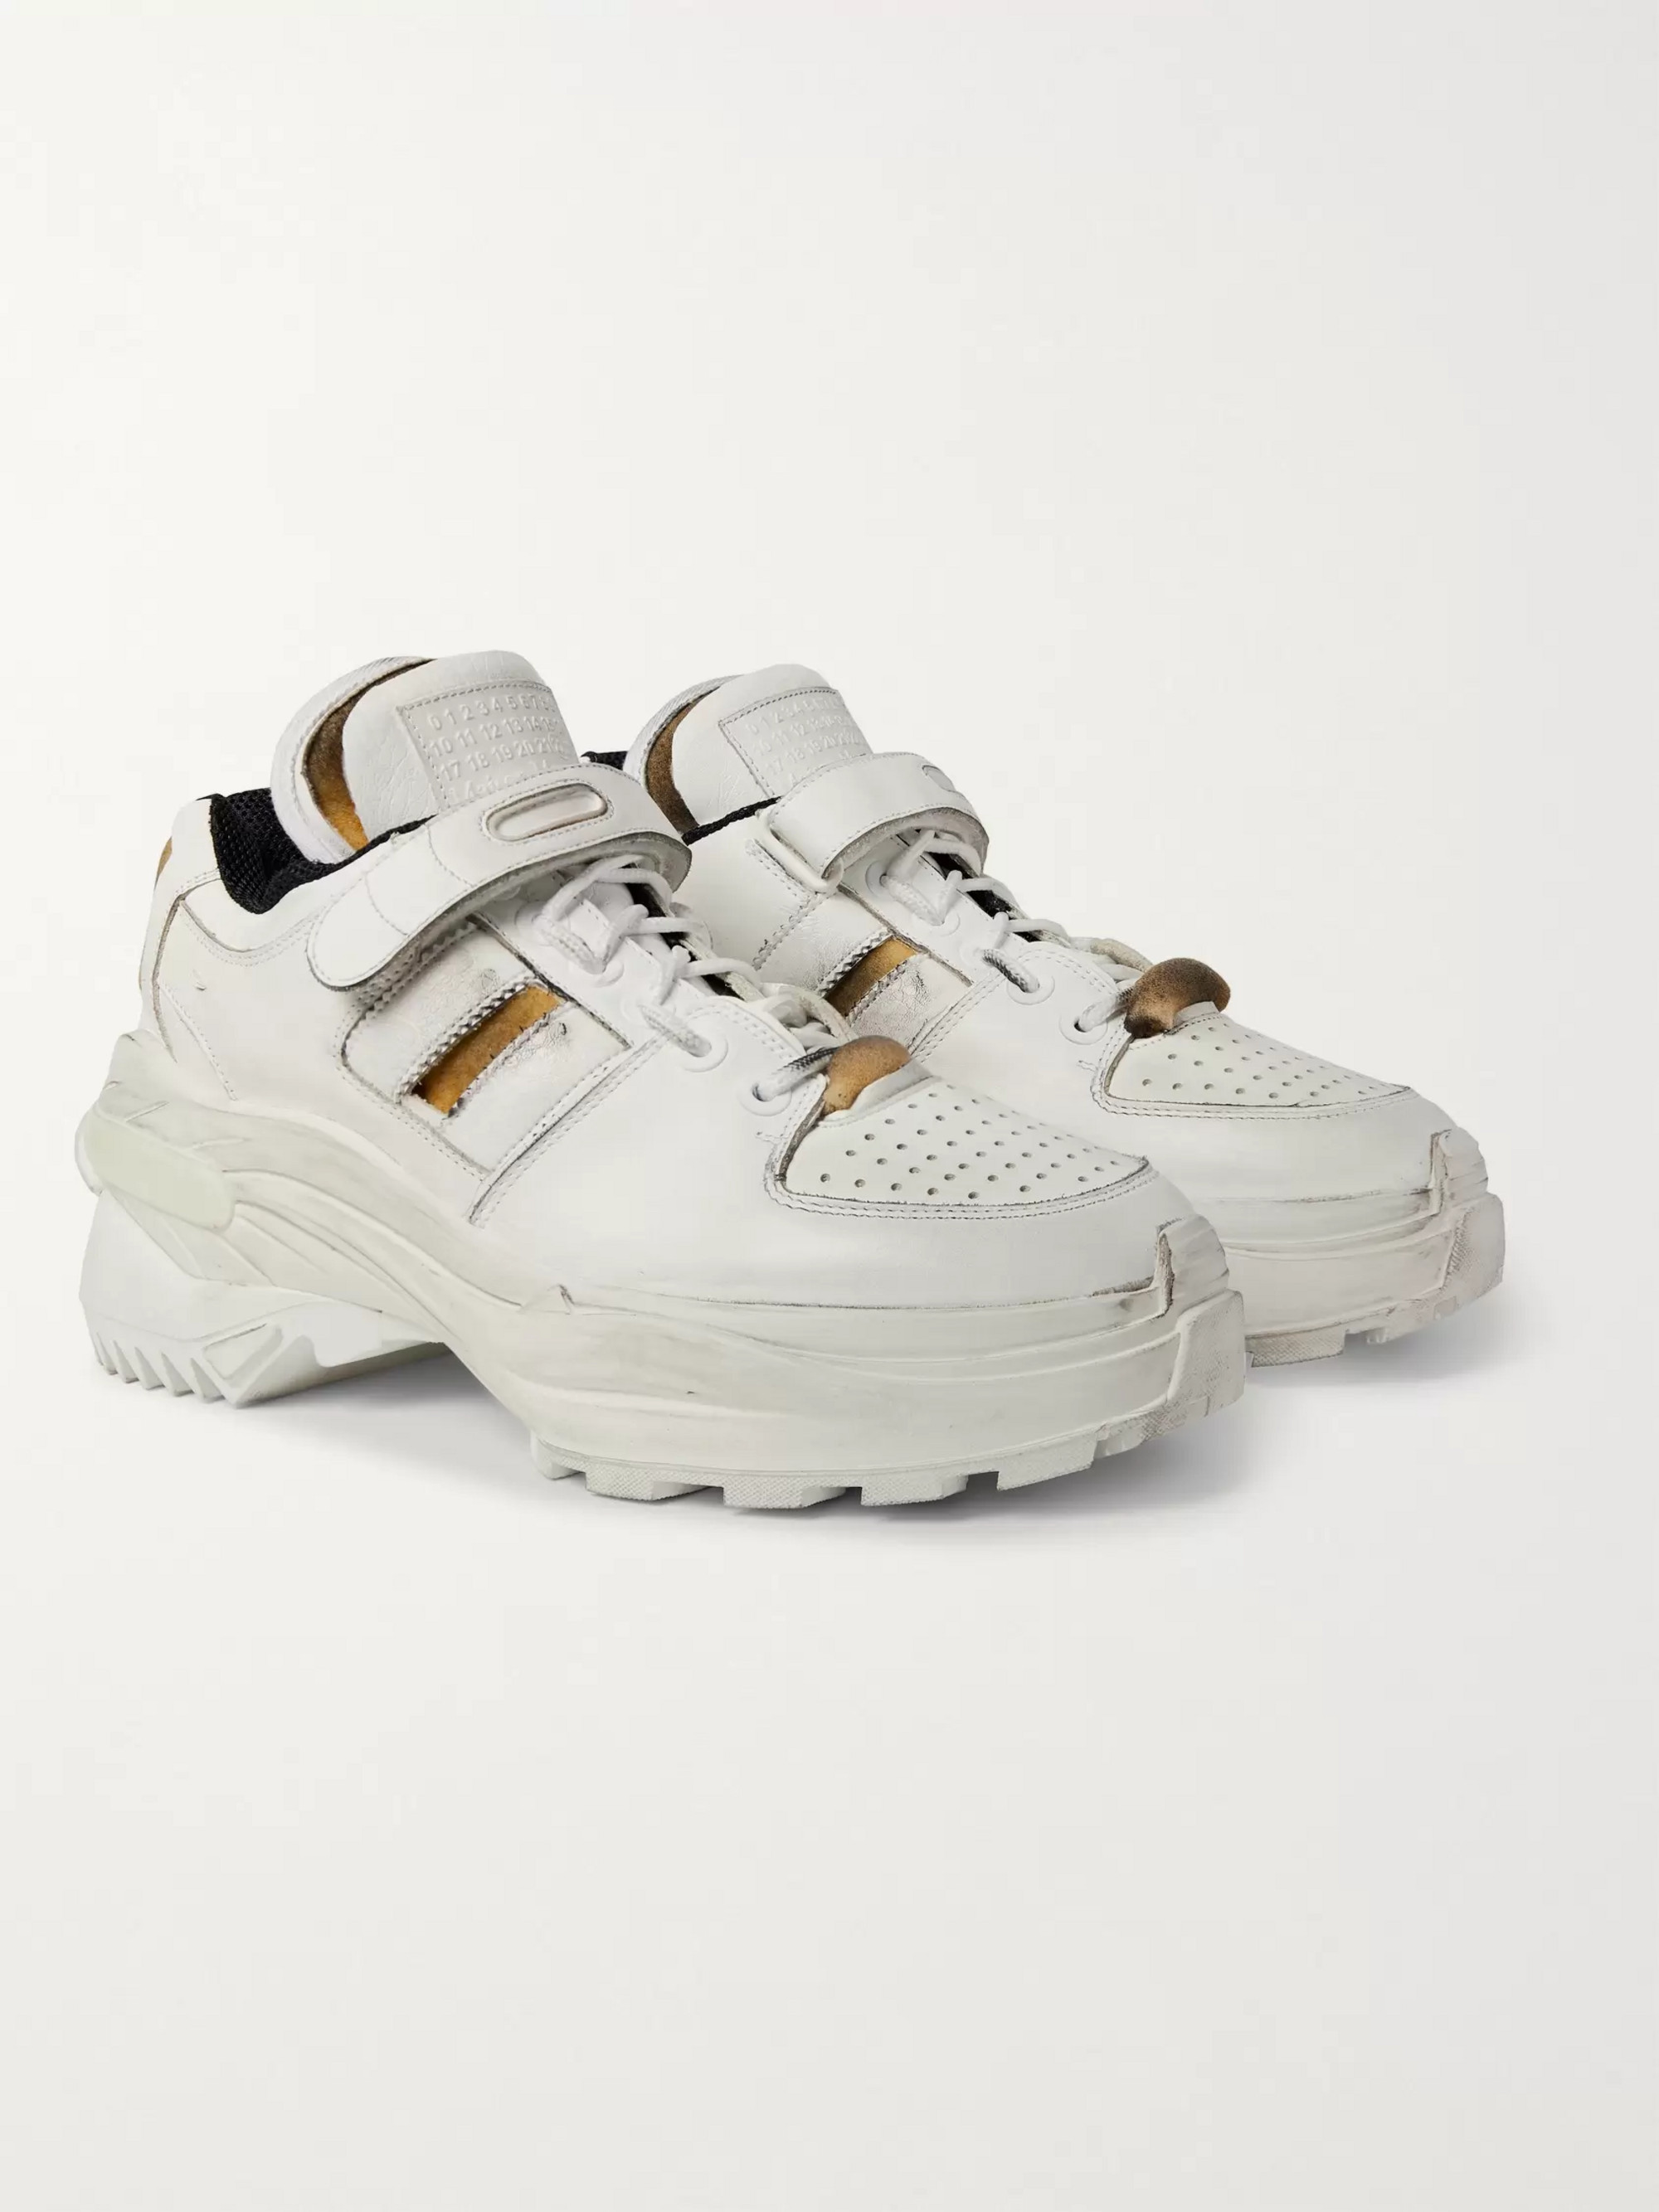 Maison Margiela Distressed Leather Sneakers